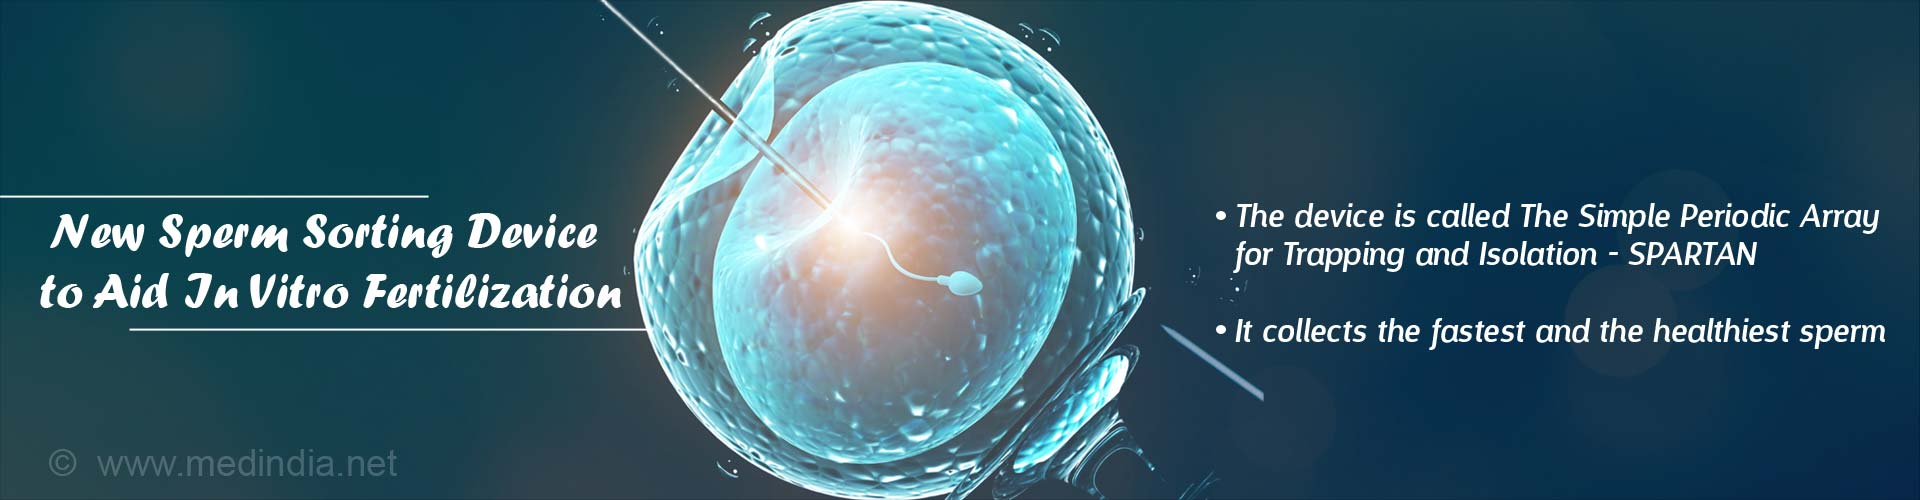 new-sperm-sorting-device-in-vitro-fertilization.jpg